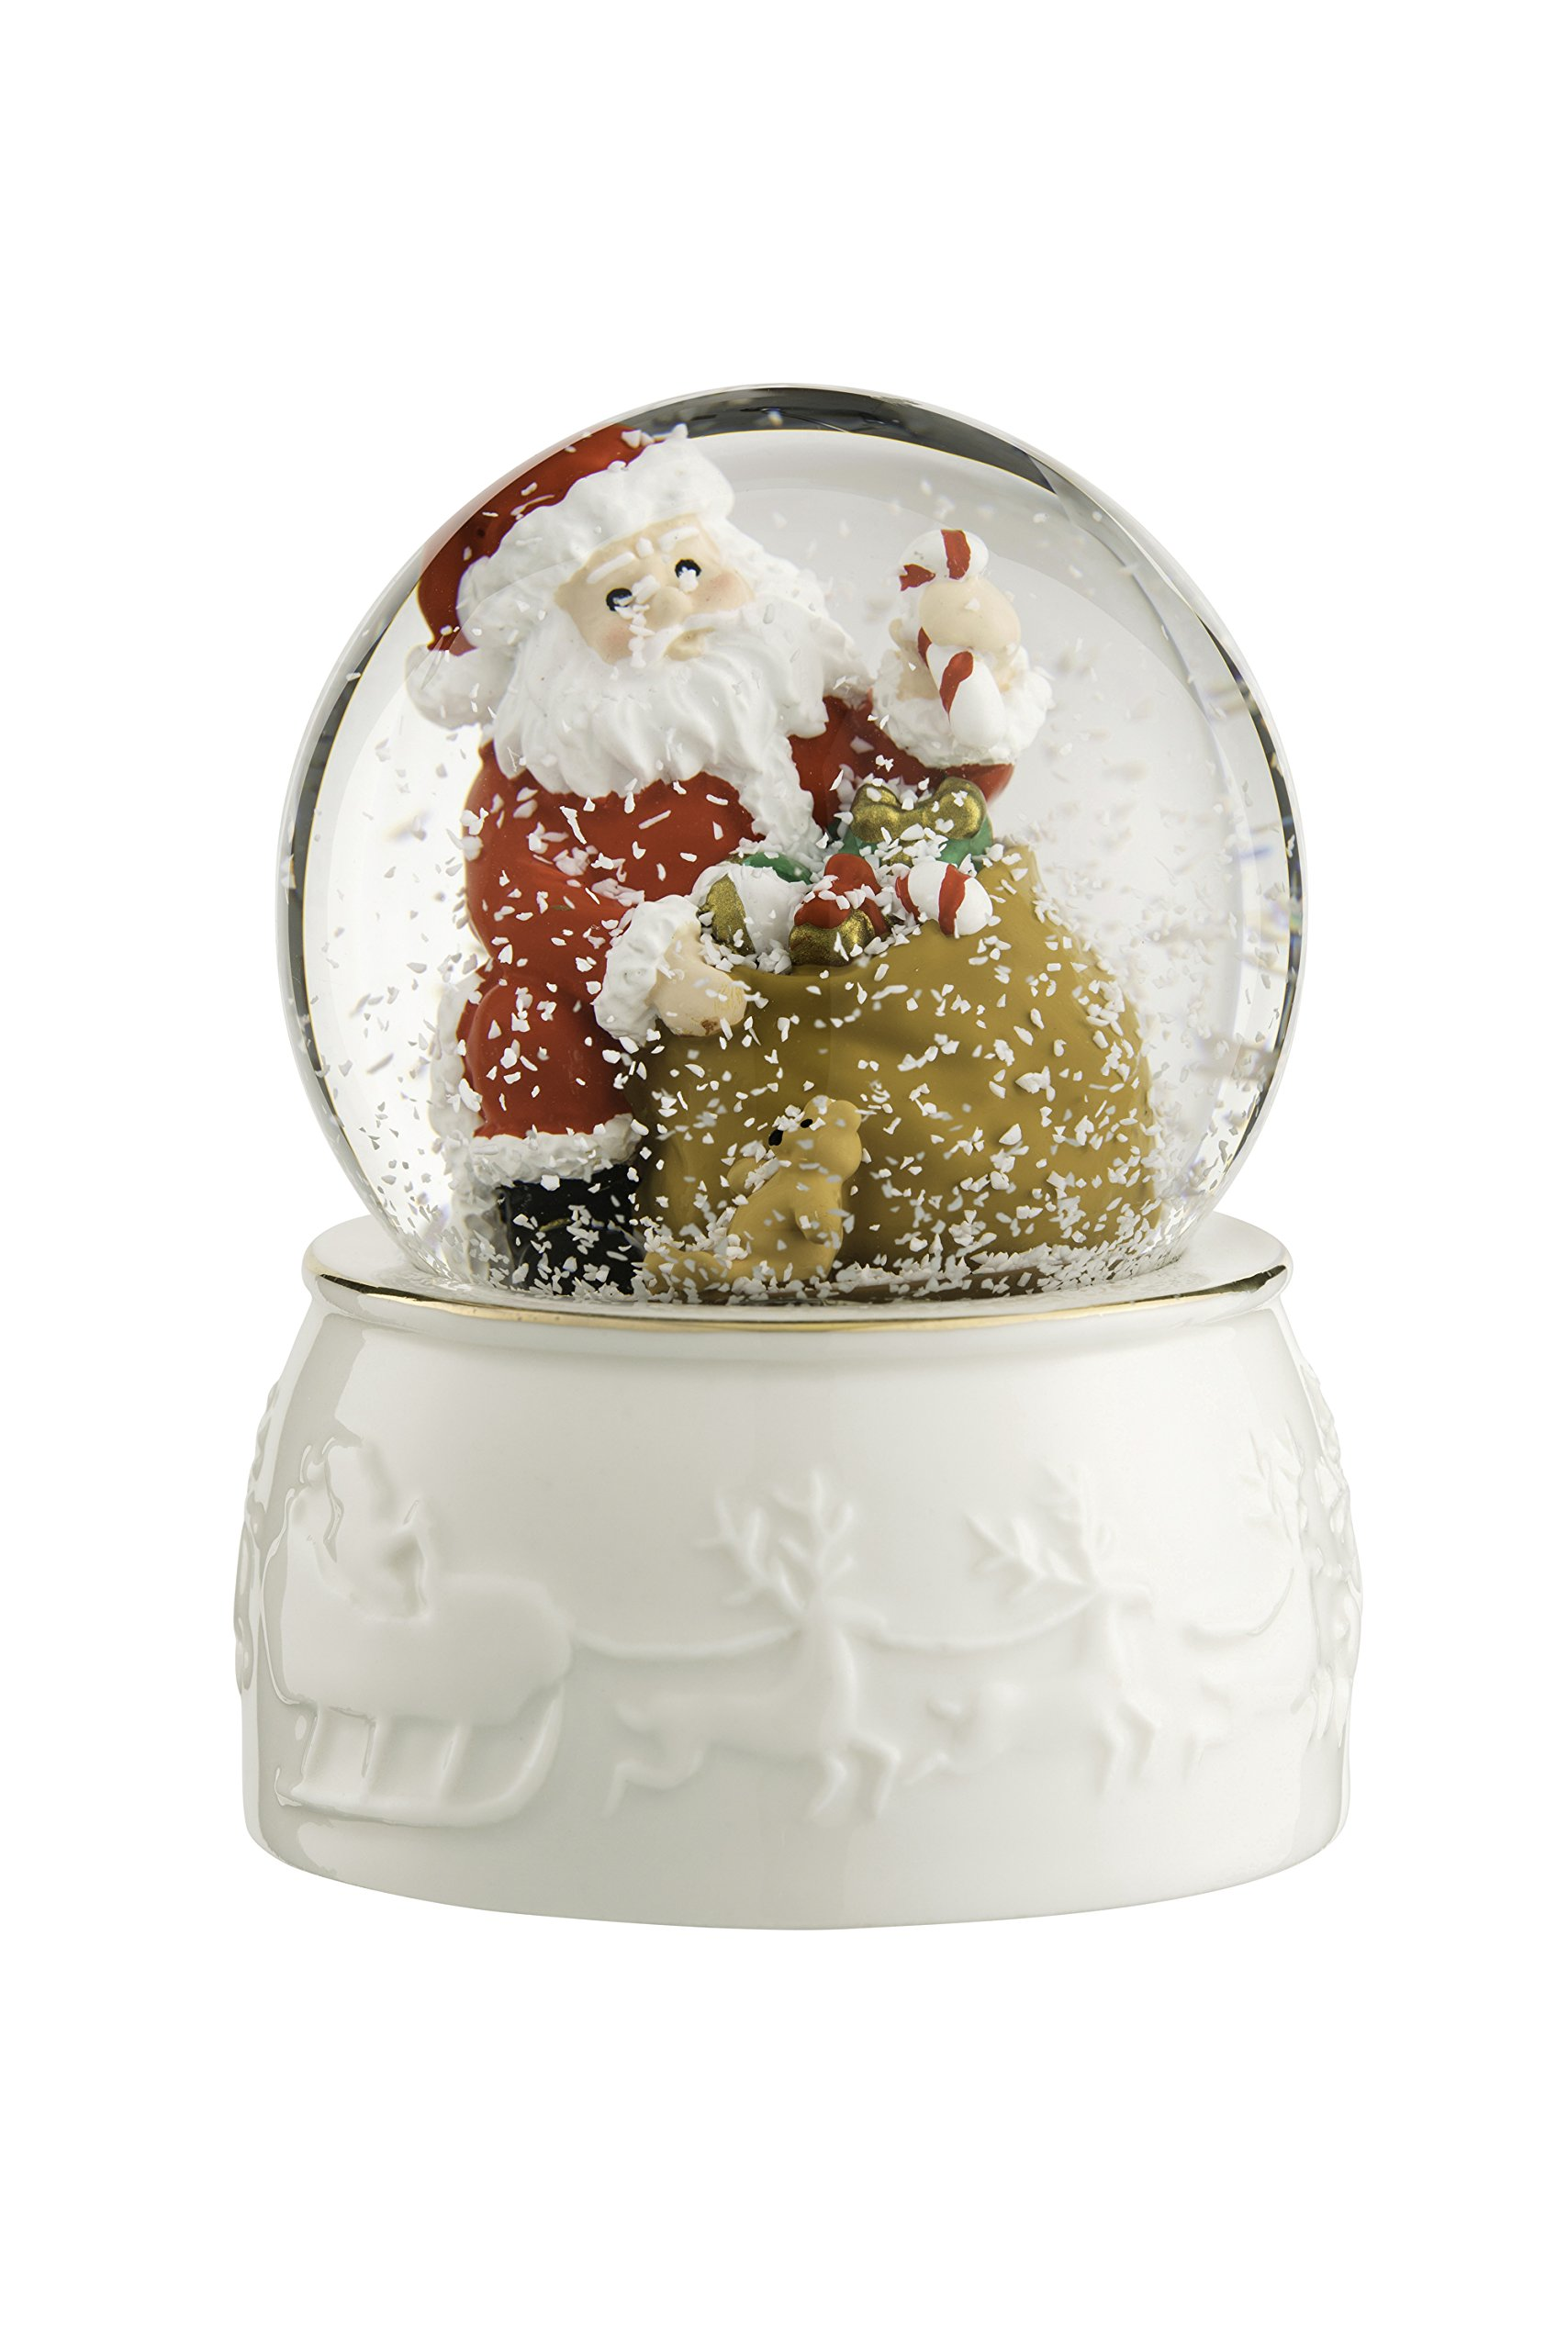 BELLEEK LIVING Santa Snowglobe, Gold/White, 9 x 6.5 x 9 cm